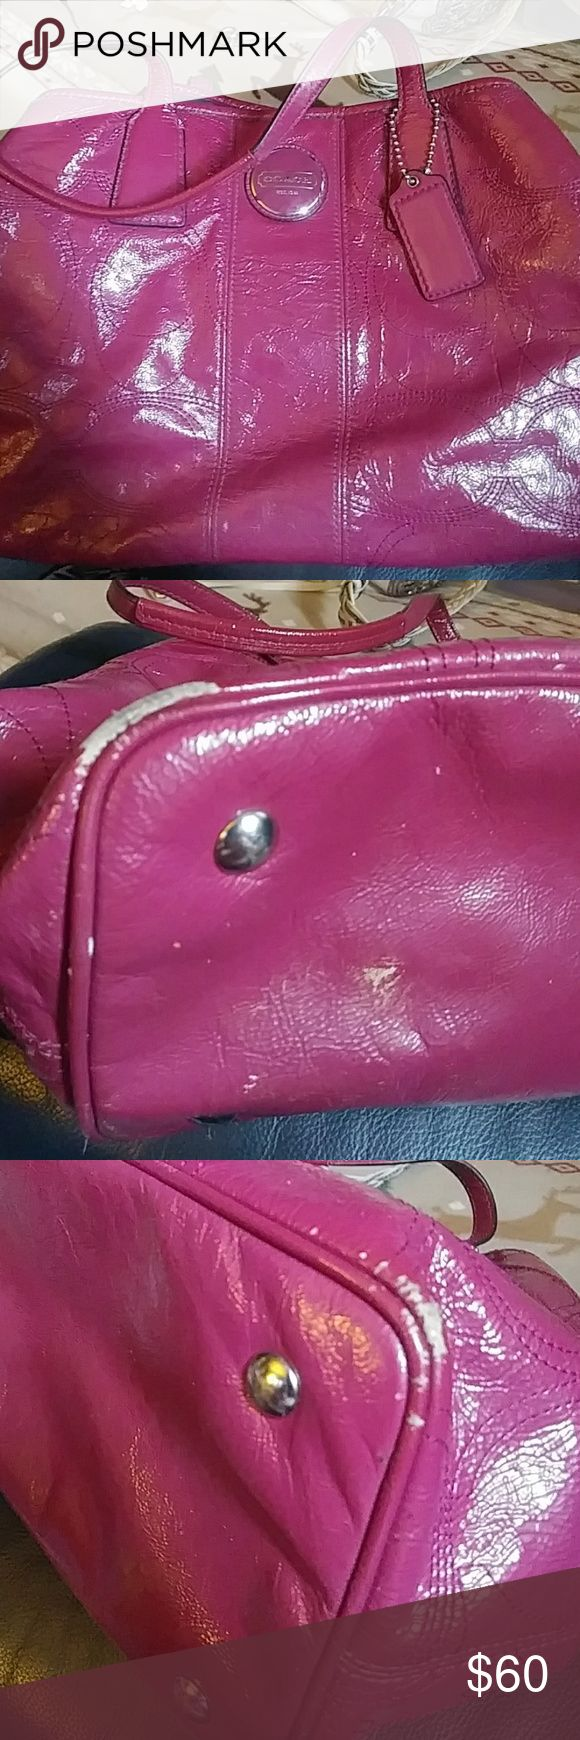 Pink coach purse Snap pink coach purse. Well loved and has tons of life left. Very nice statement piece to any outfit. There are dark markings on back of bag. Never tried cleaning it. Also wear on bottom of purse. This is not a new purse. No box or dust bag with it. Price reflects wear on bag. Coach Bags Shoulder Bags